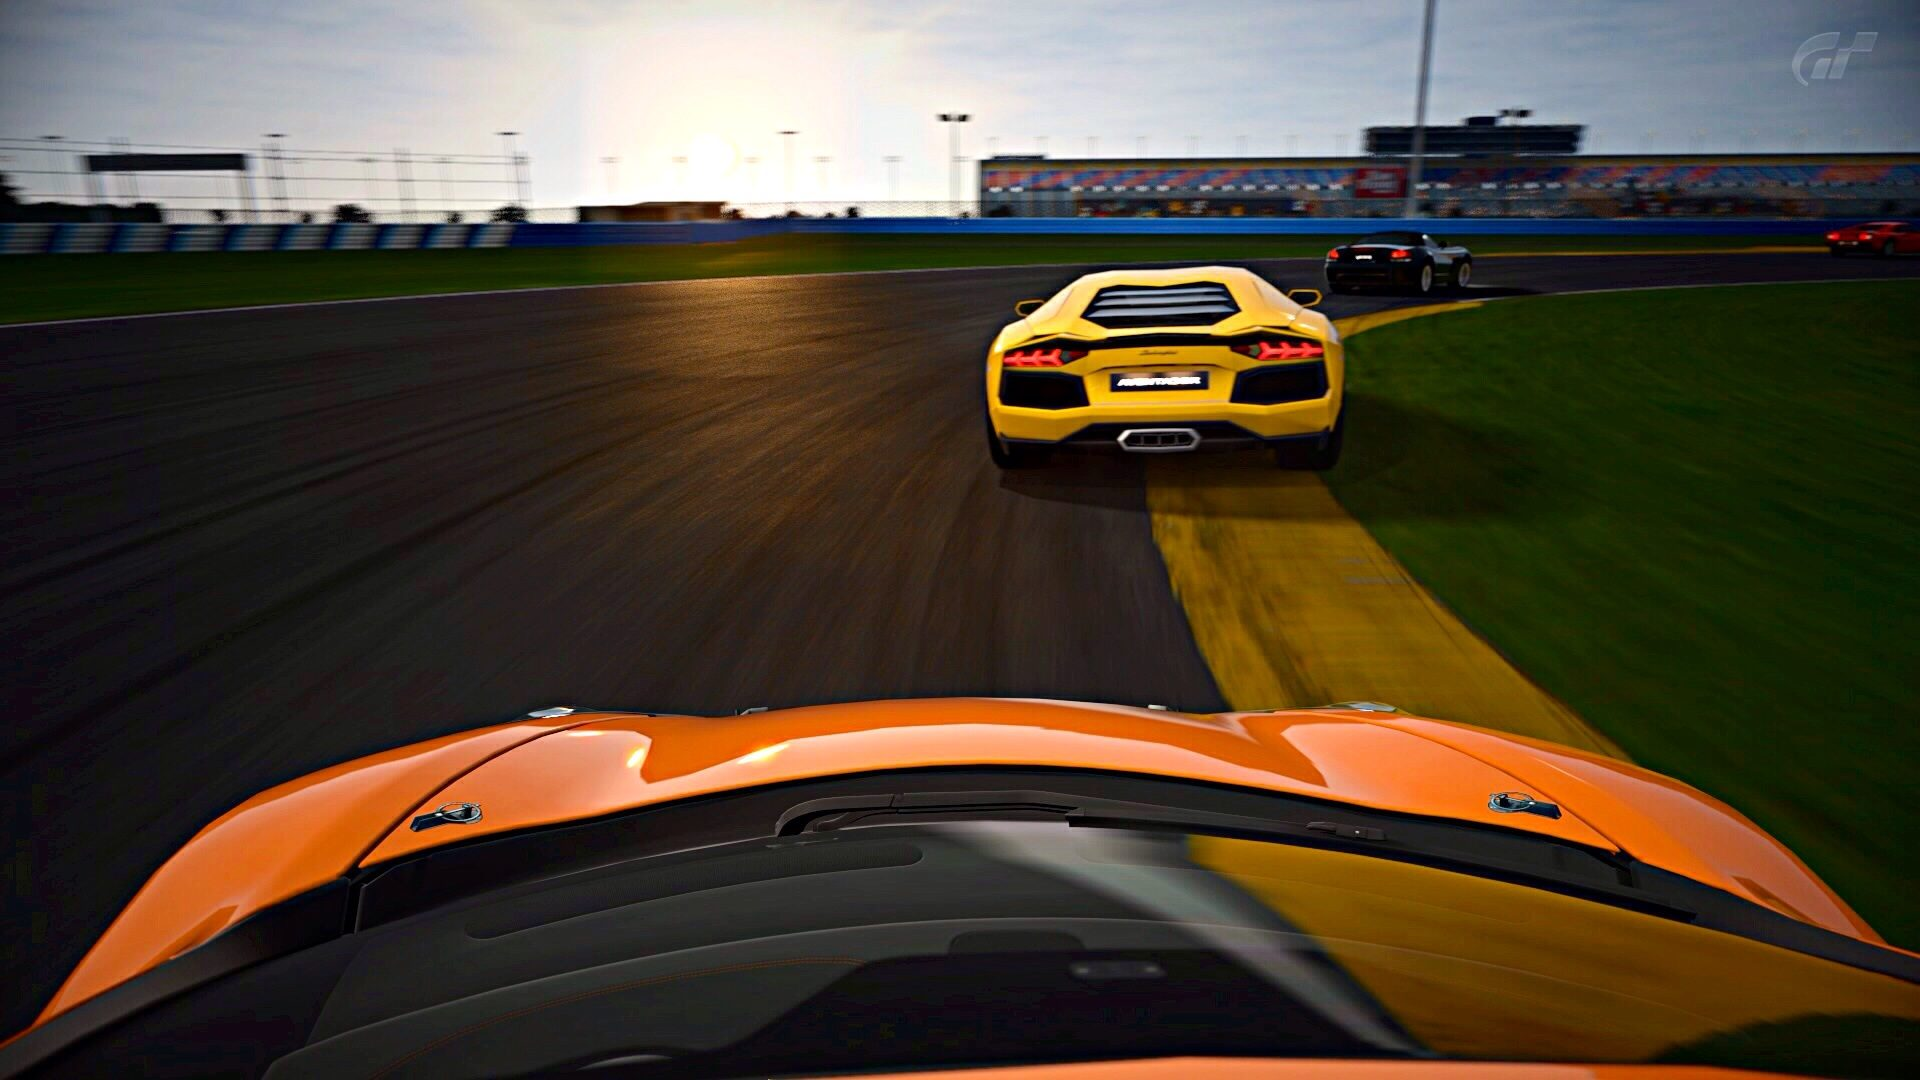 MP4-12C GTC Daytona Road Course (4).jpg